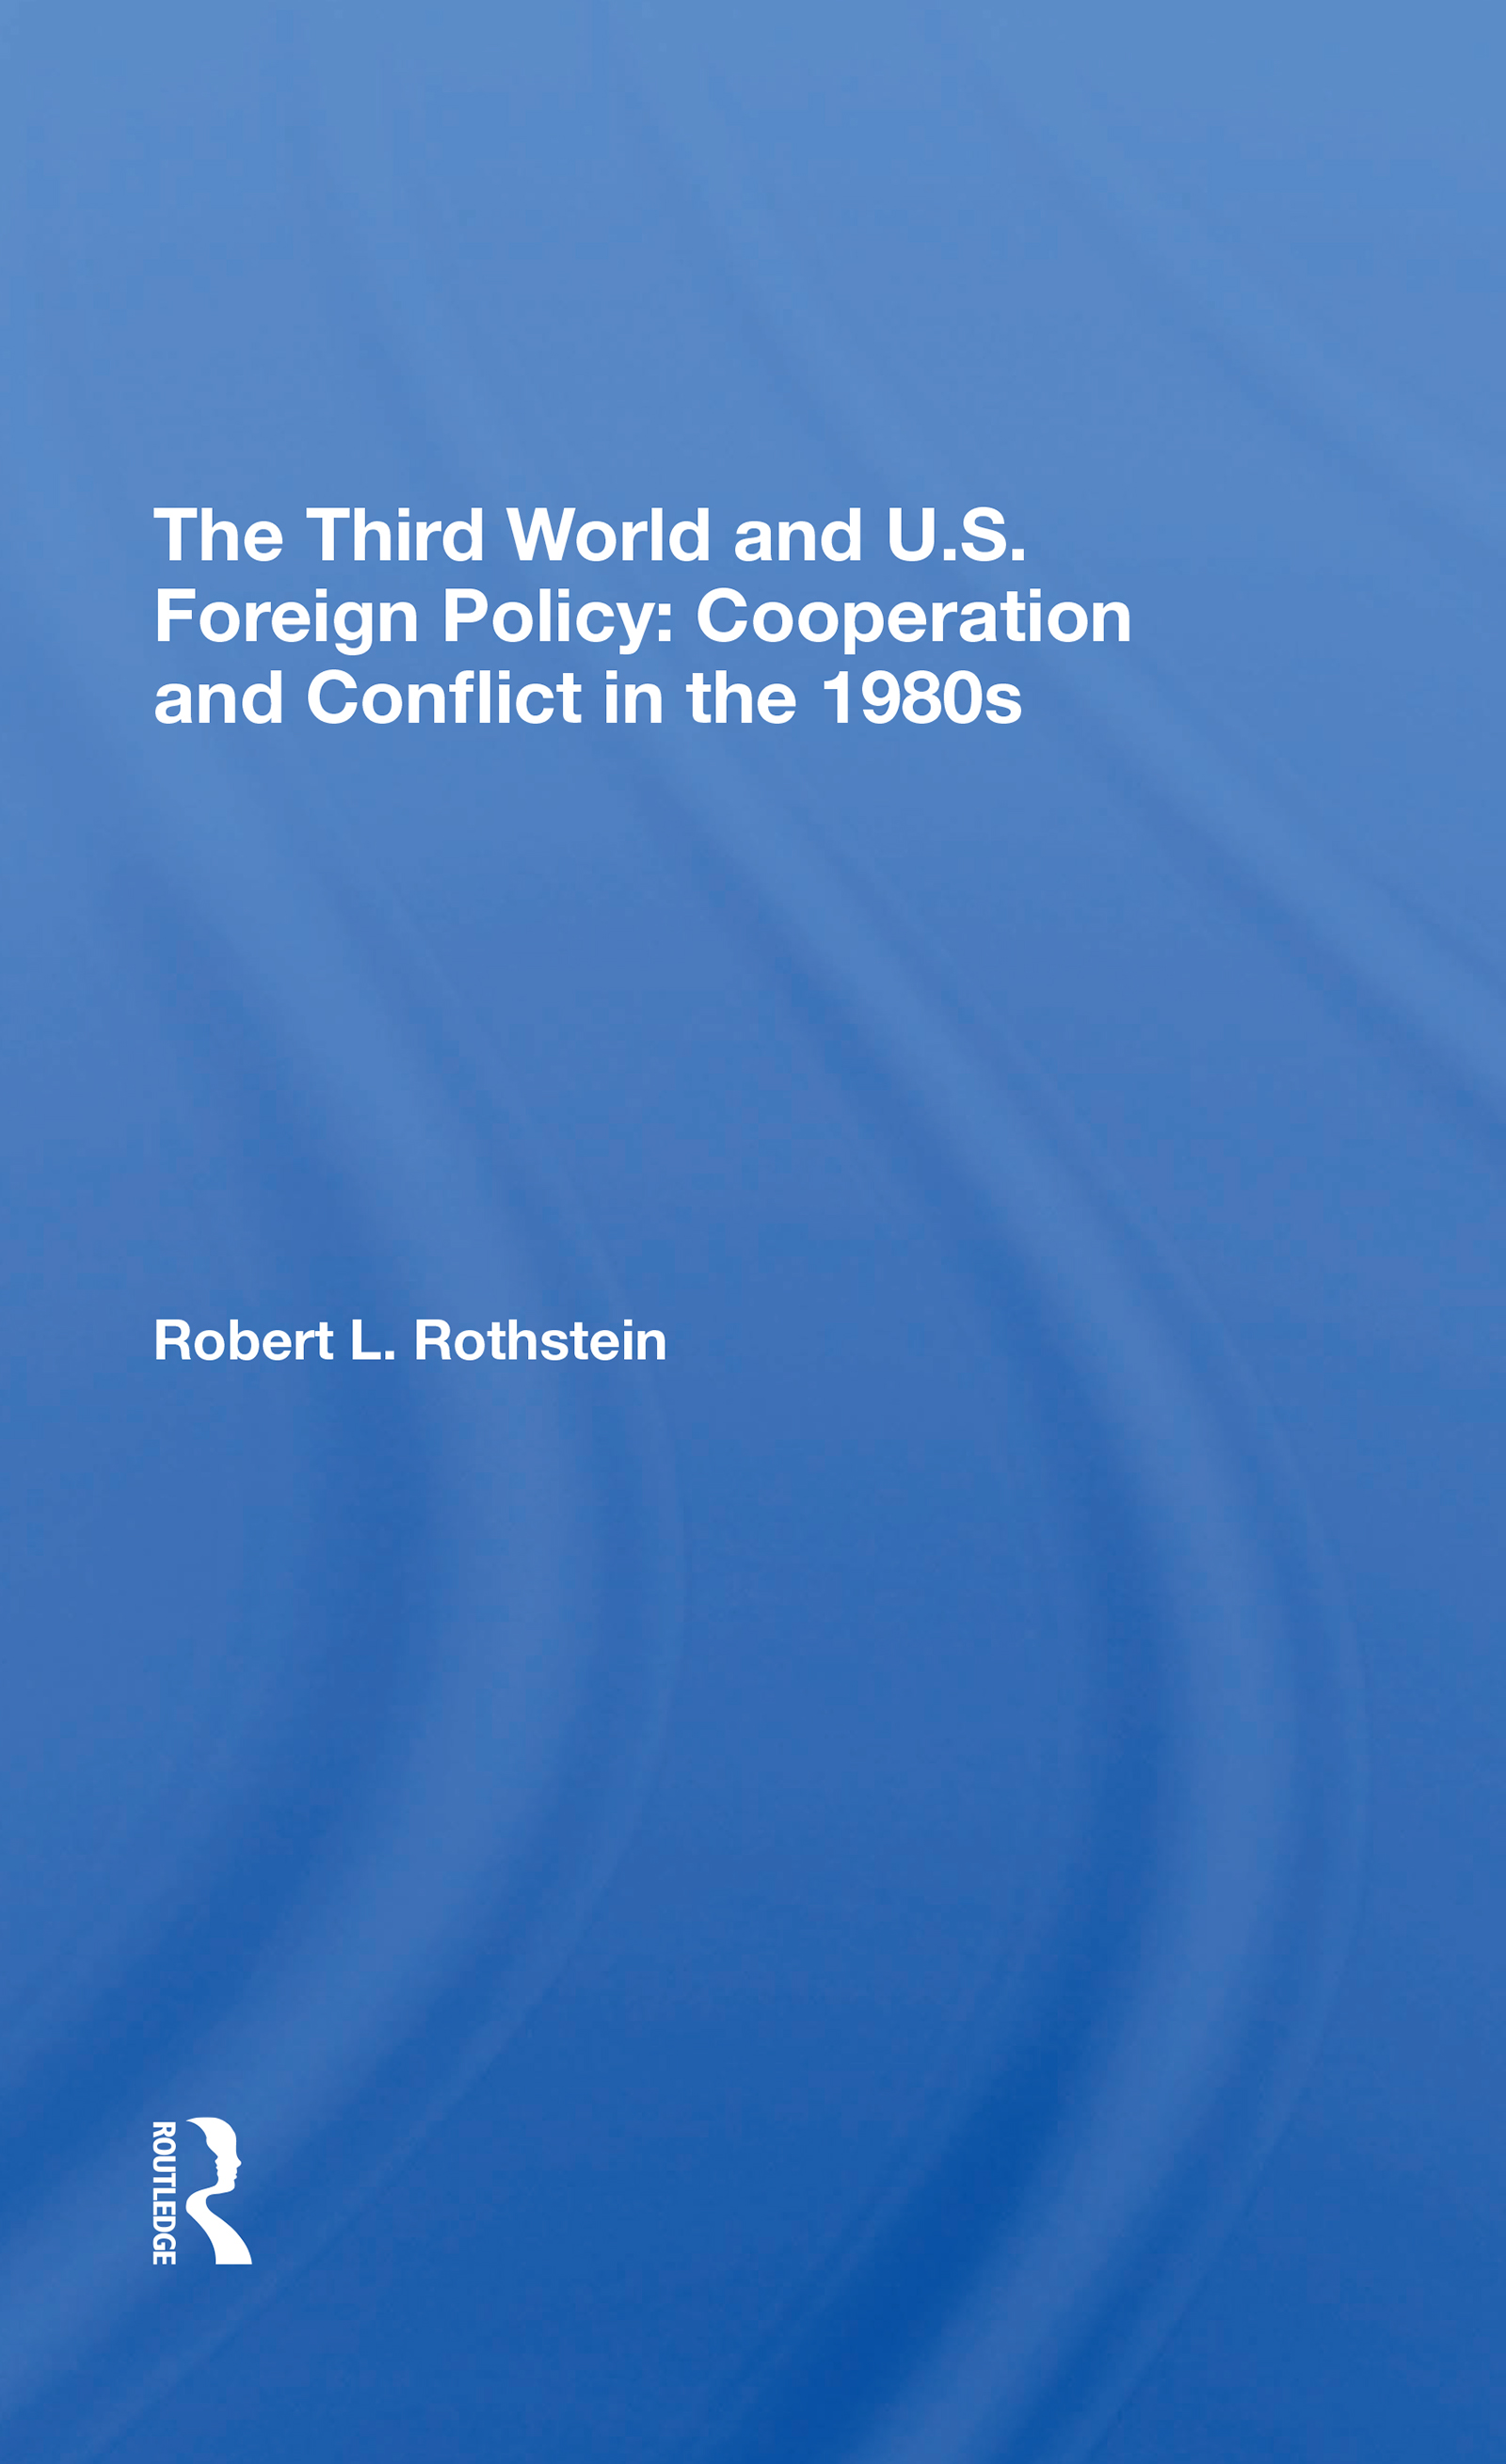 The Third World and U.S. Foreign Policy: Cooperation and Conflict in the 1980s